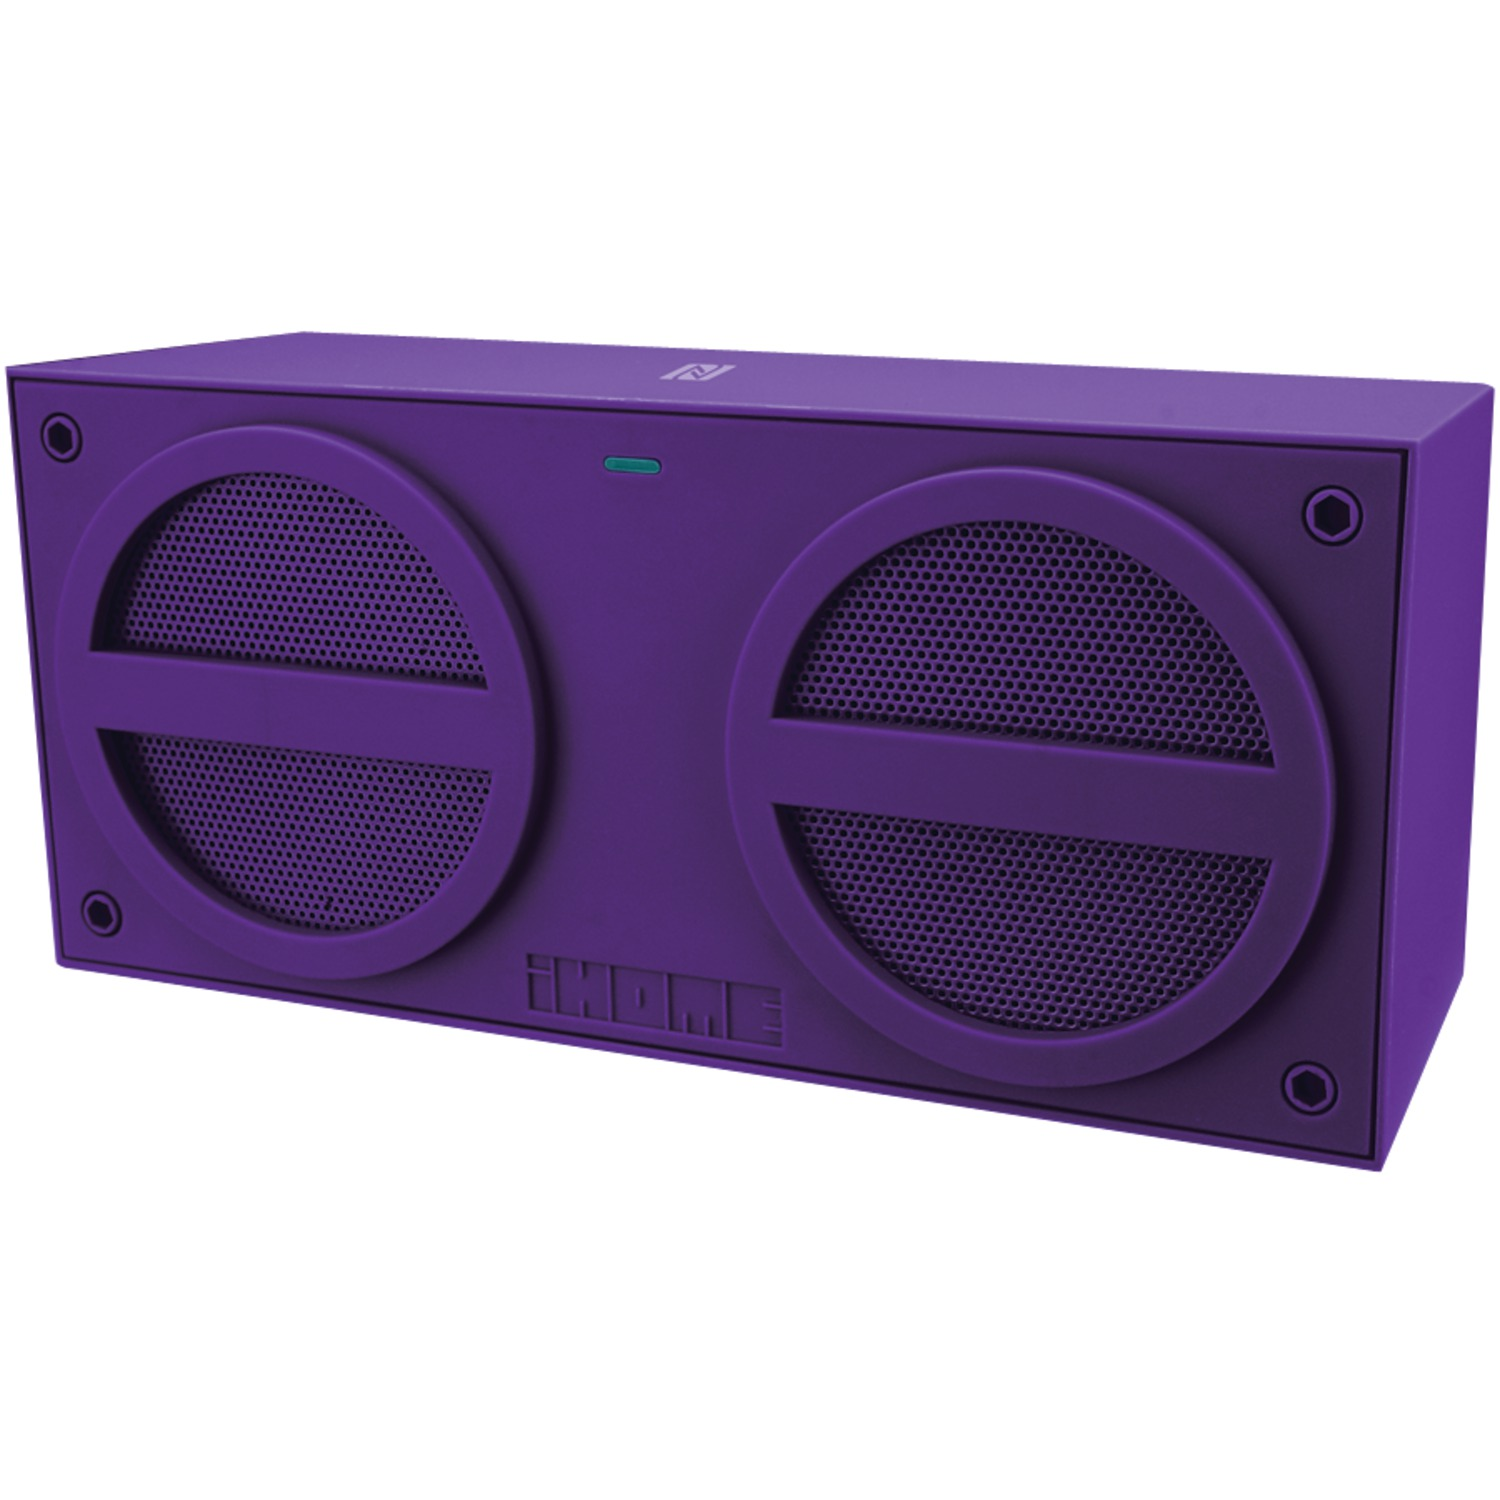 ihome speaker how to connect bluetooth